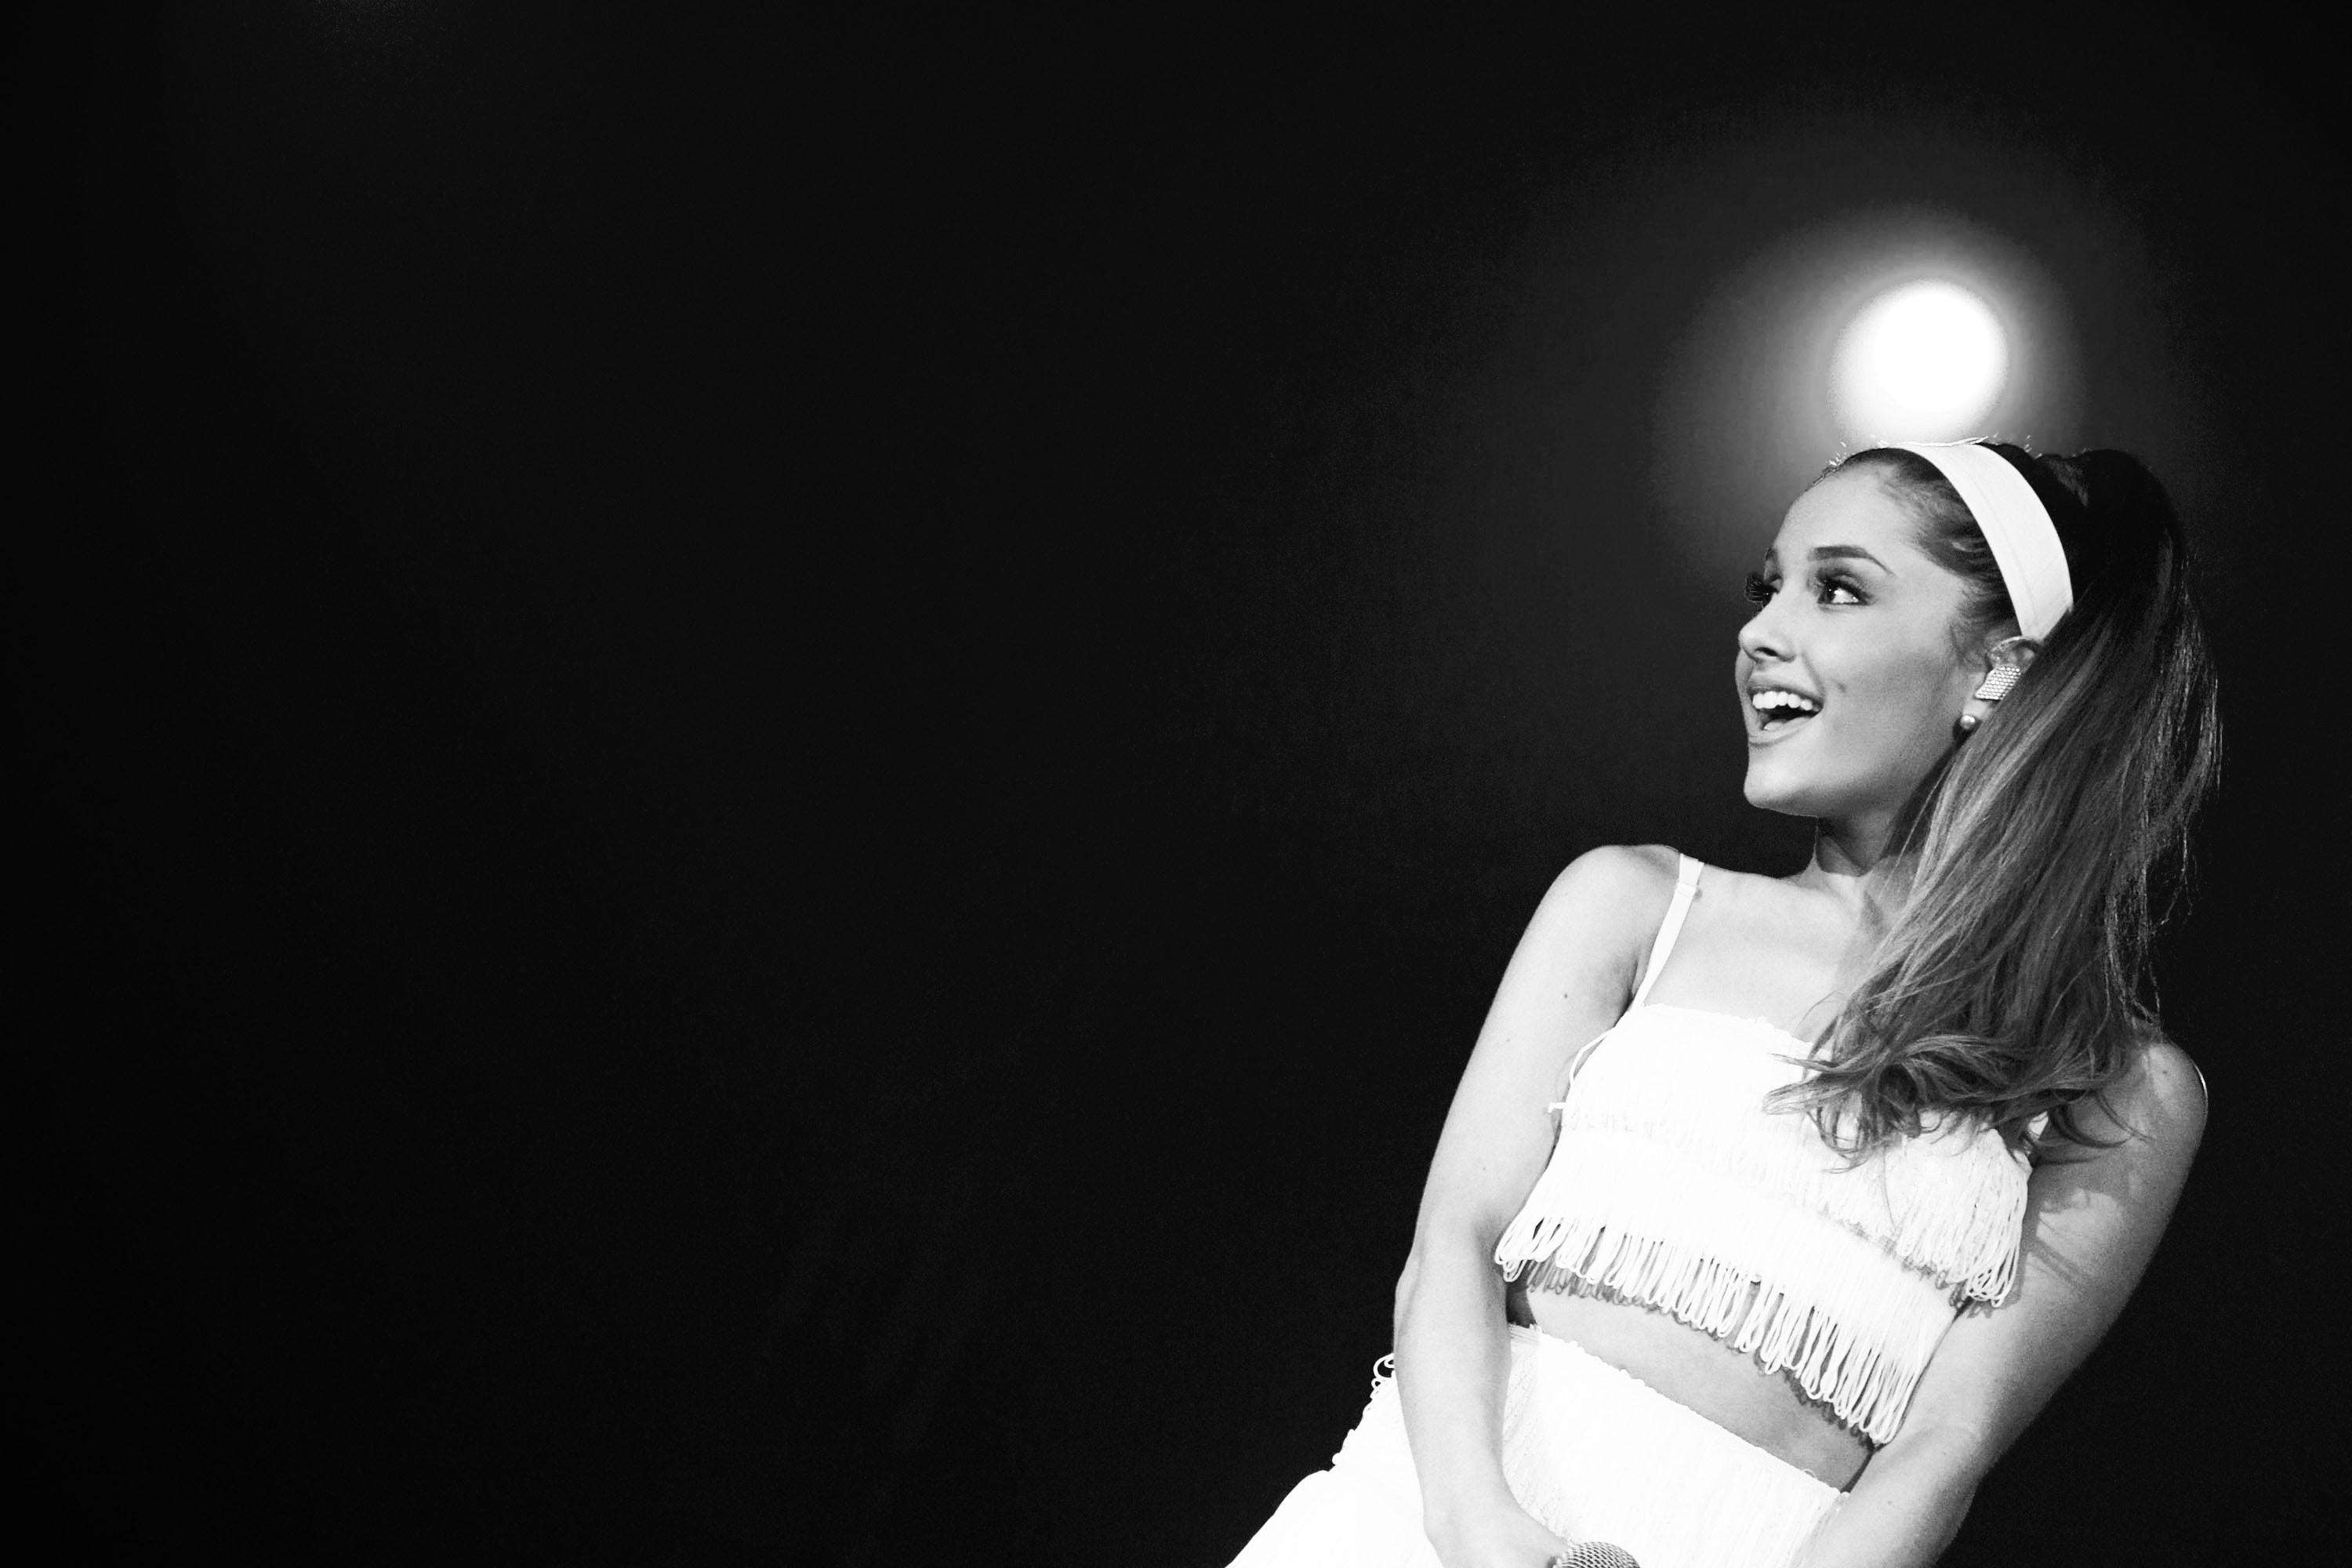 ariana grande wallpaper celebrity background 64557